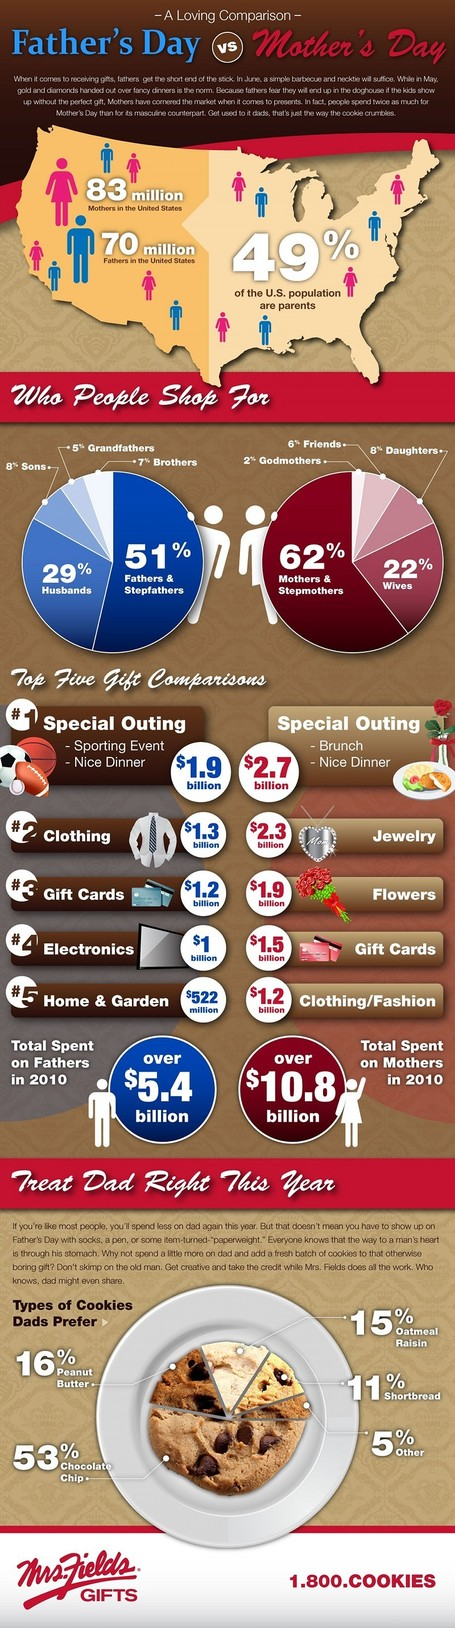 Loving Comparison of Our Life: Father's Day vs Mother's Day | All Infographics | All Infographics | Scoop.it